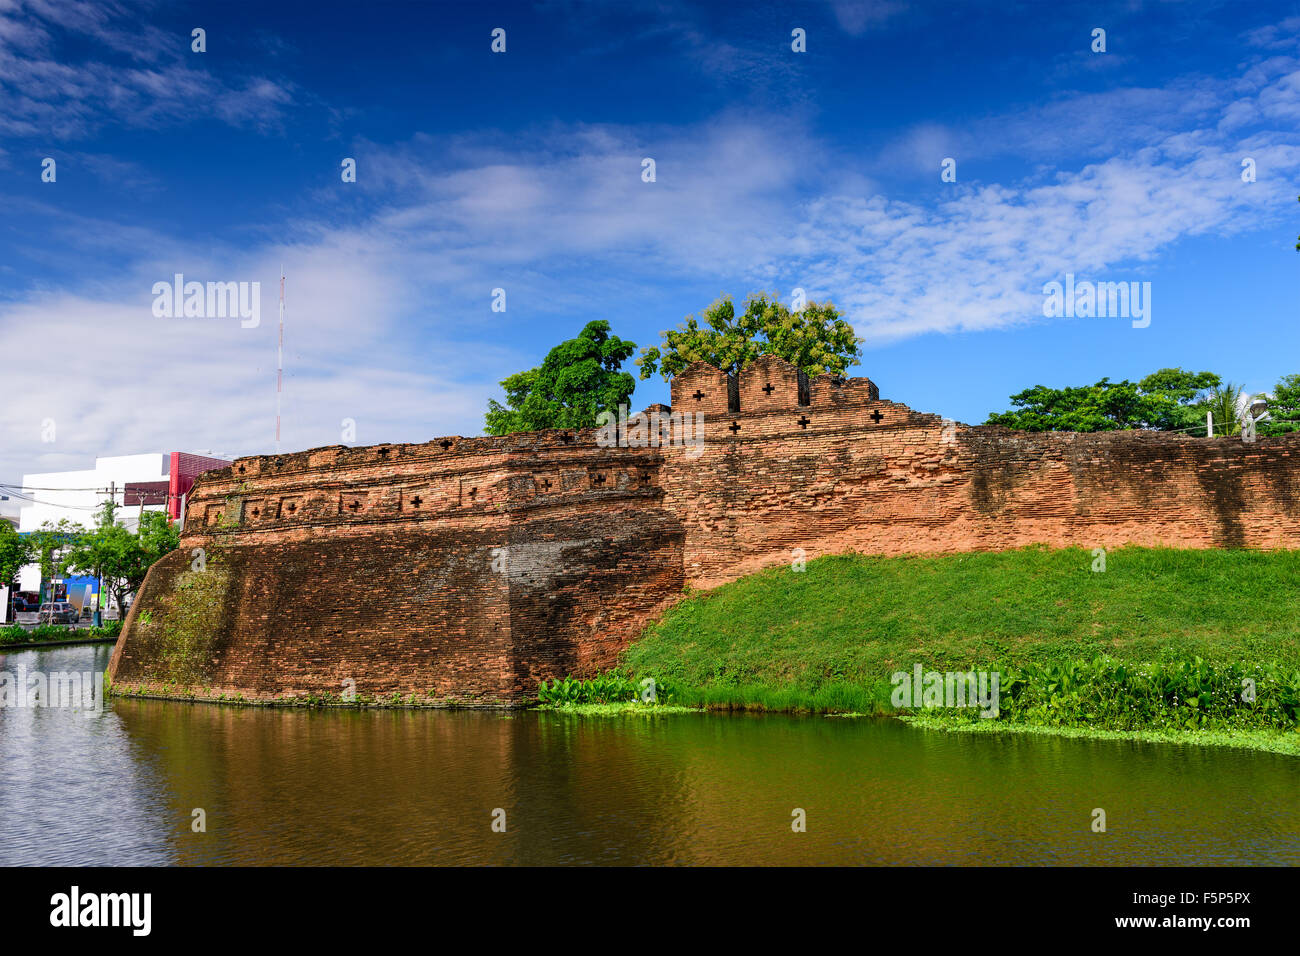 Chiang Mai, Thailand old city ancient wall and moat. - Stock Image